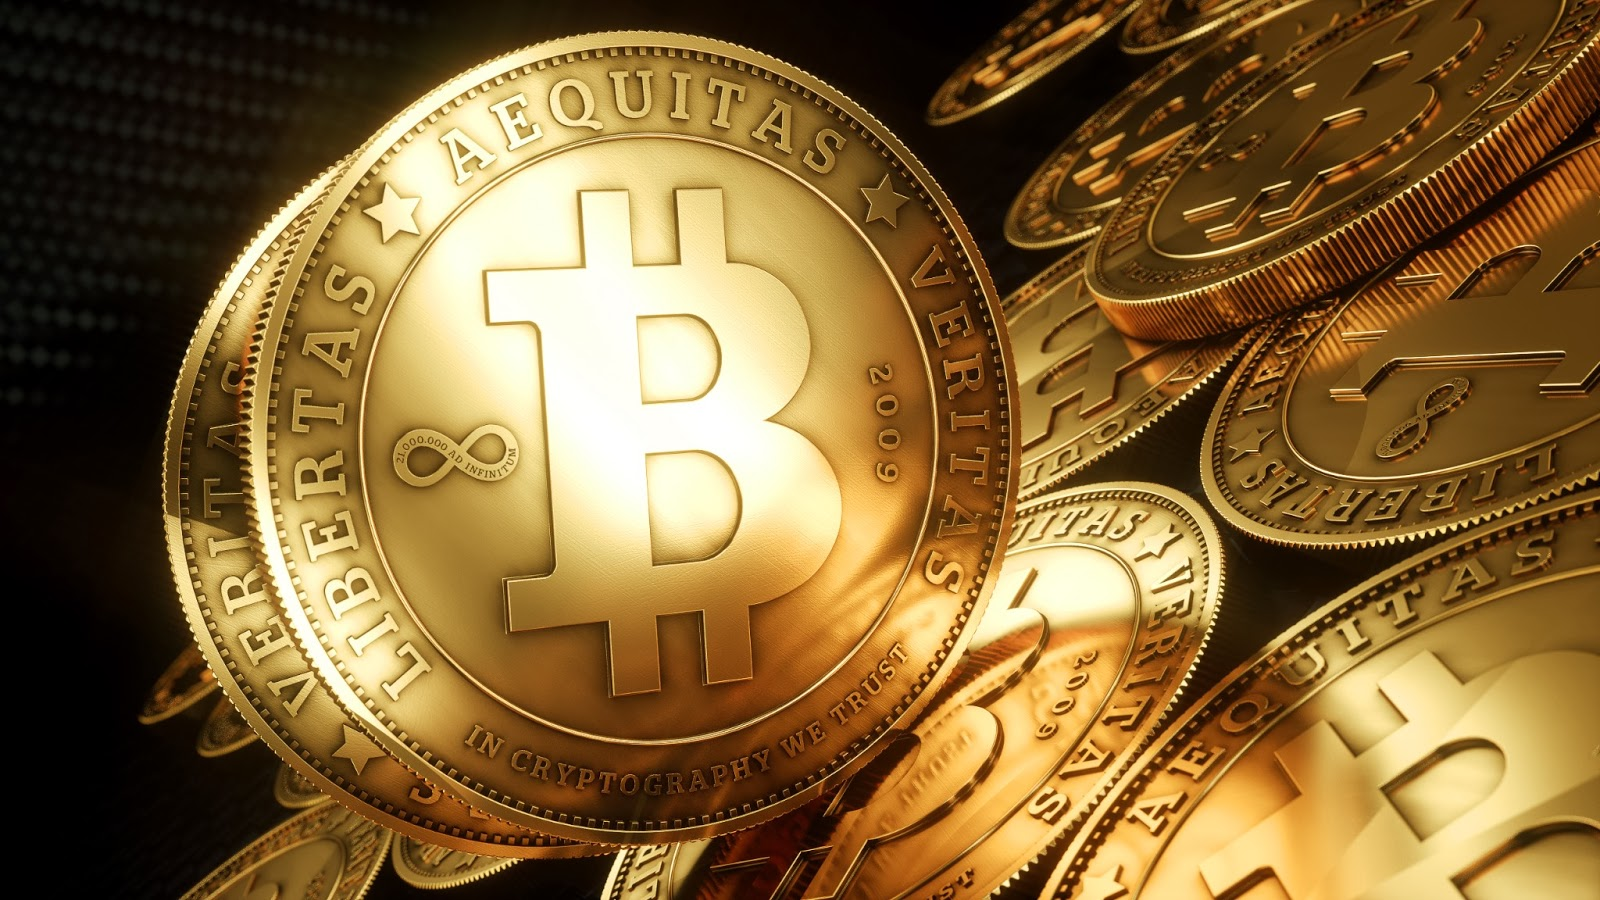 Bitcoin and Bullion: Time to Deal with Cryptocurrencies